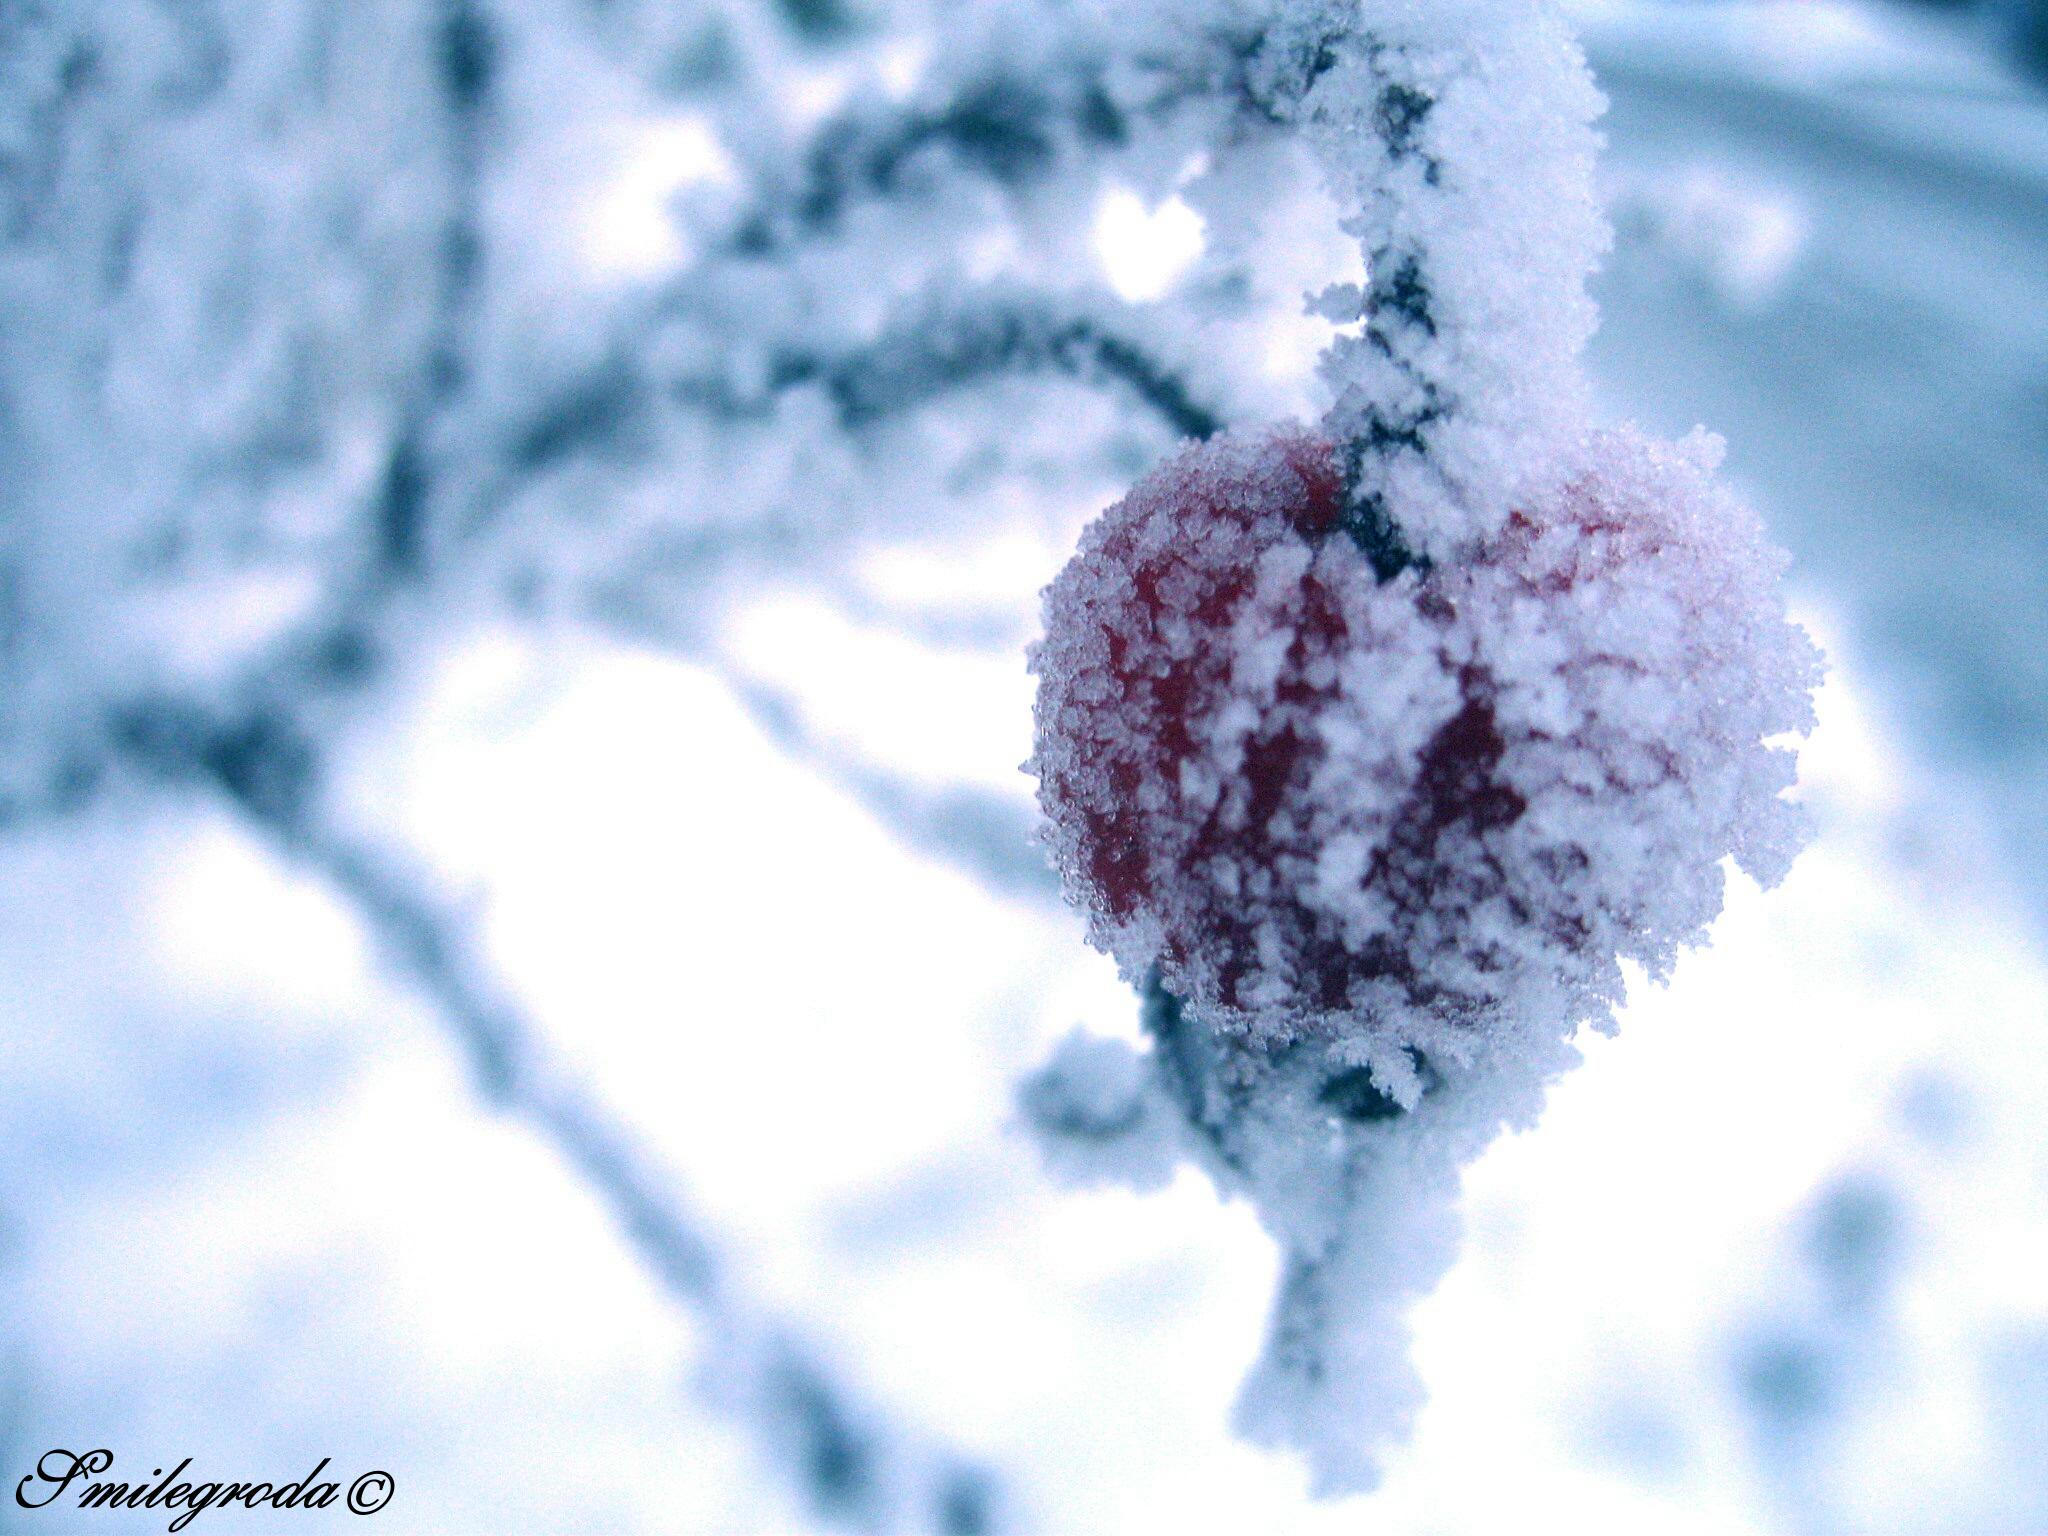 Frozen Heart By Smilegroda On DeviantArt